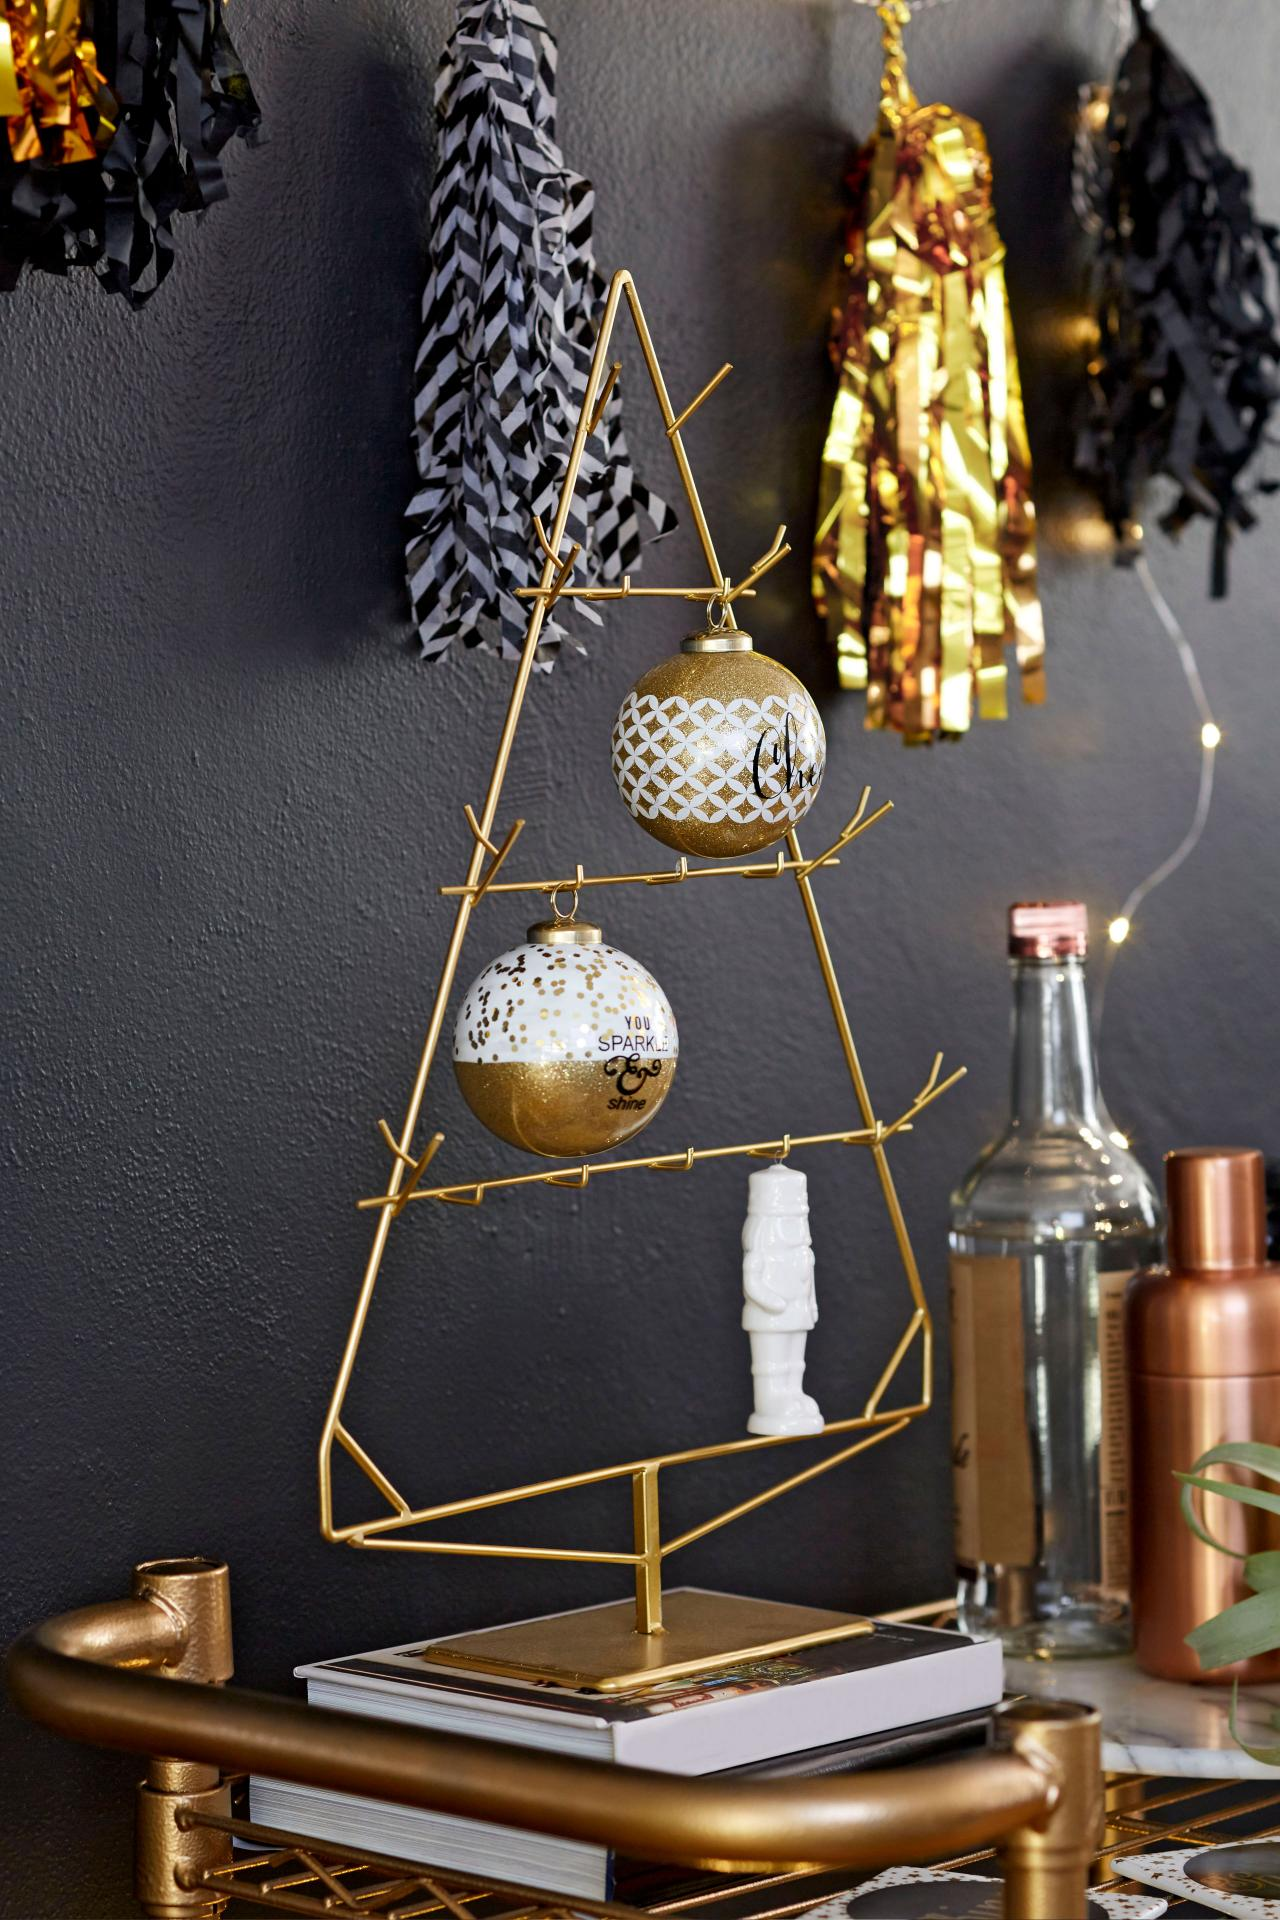 Black And Gold Decorating Ideas For Entertaining | DIY Network Blog: Made +  Remade | DIY